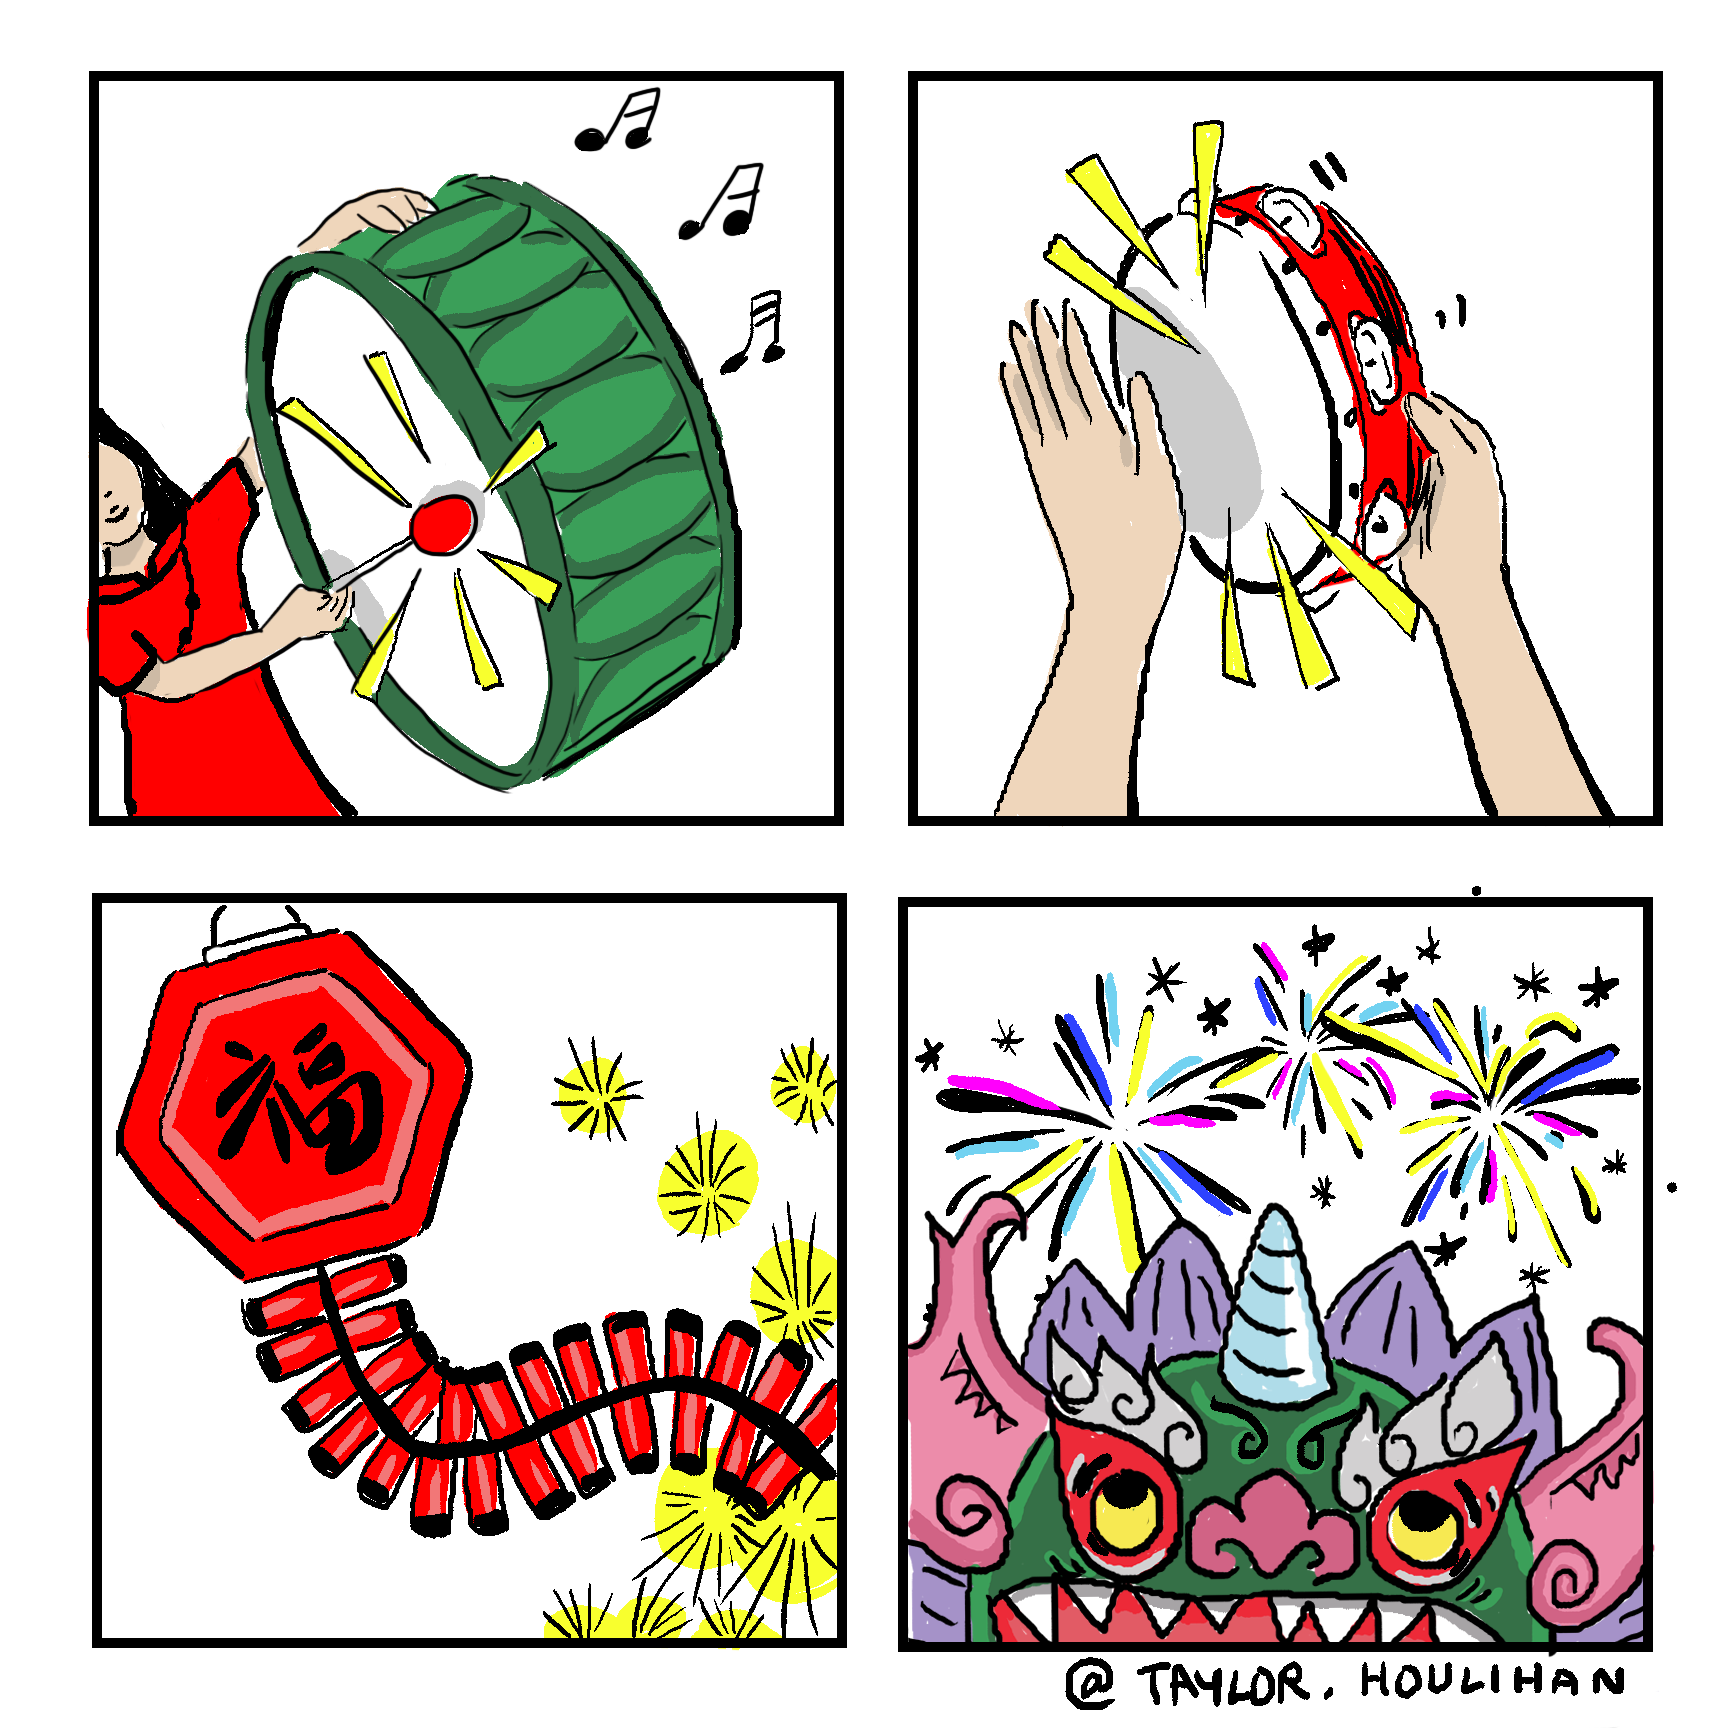 TH_chinesenewyearcomics_2.png